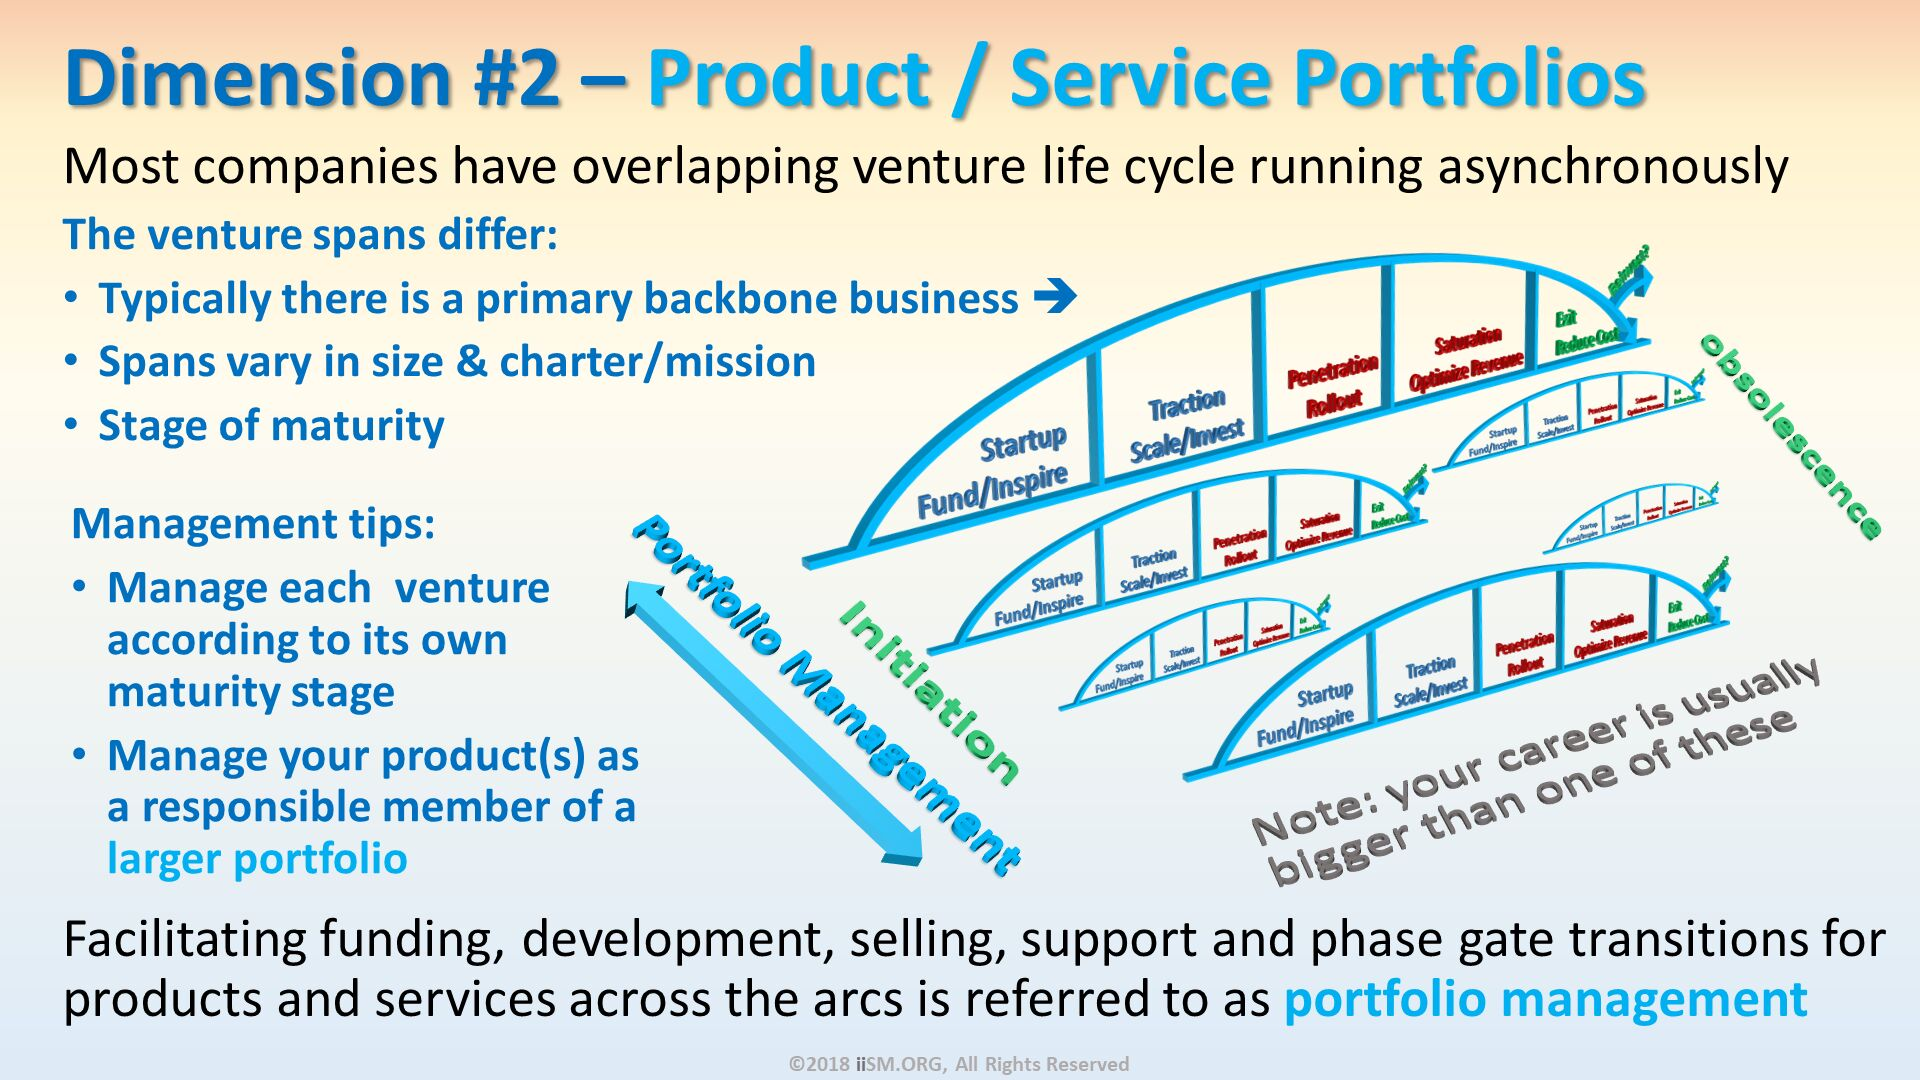 Most companies have overlapping venture life cycle running asynchronously The venture spans differ: Typically there is a primary backbone business  Spans vary in size & charter/mission Stage of maturity . Dimension #2 – Product / Service Portfolios . Facilitating funding, development, selling, support and phase gate transitions for products and services across the arcs is referred to as portfolio management. Note: your career is usually bigger than one of these. Initiation. ©2018 iiSM.ORG, All Rights Reserved. Management tips: Manage each  venture according to its ownmaturity stage Manage your product(s) as a responsible member of a larger portfolio.